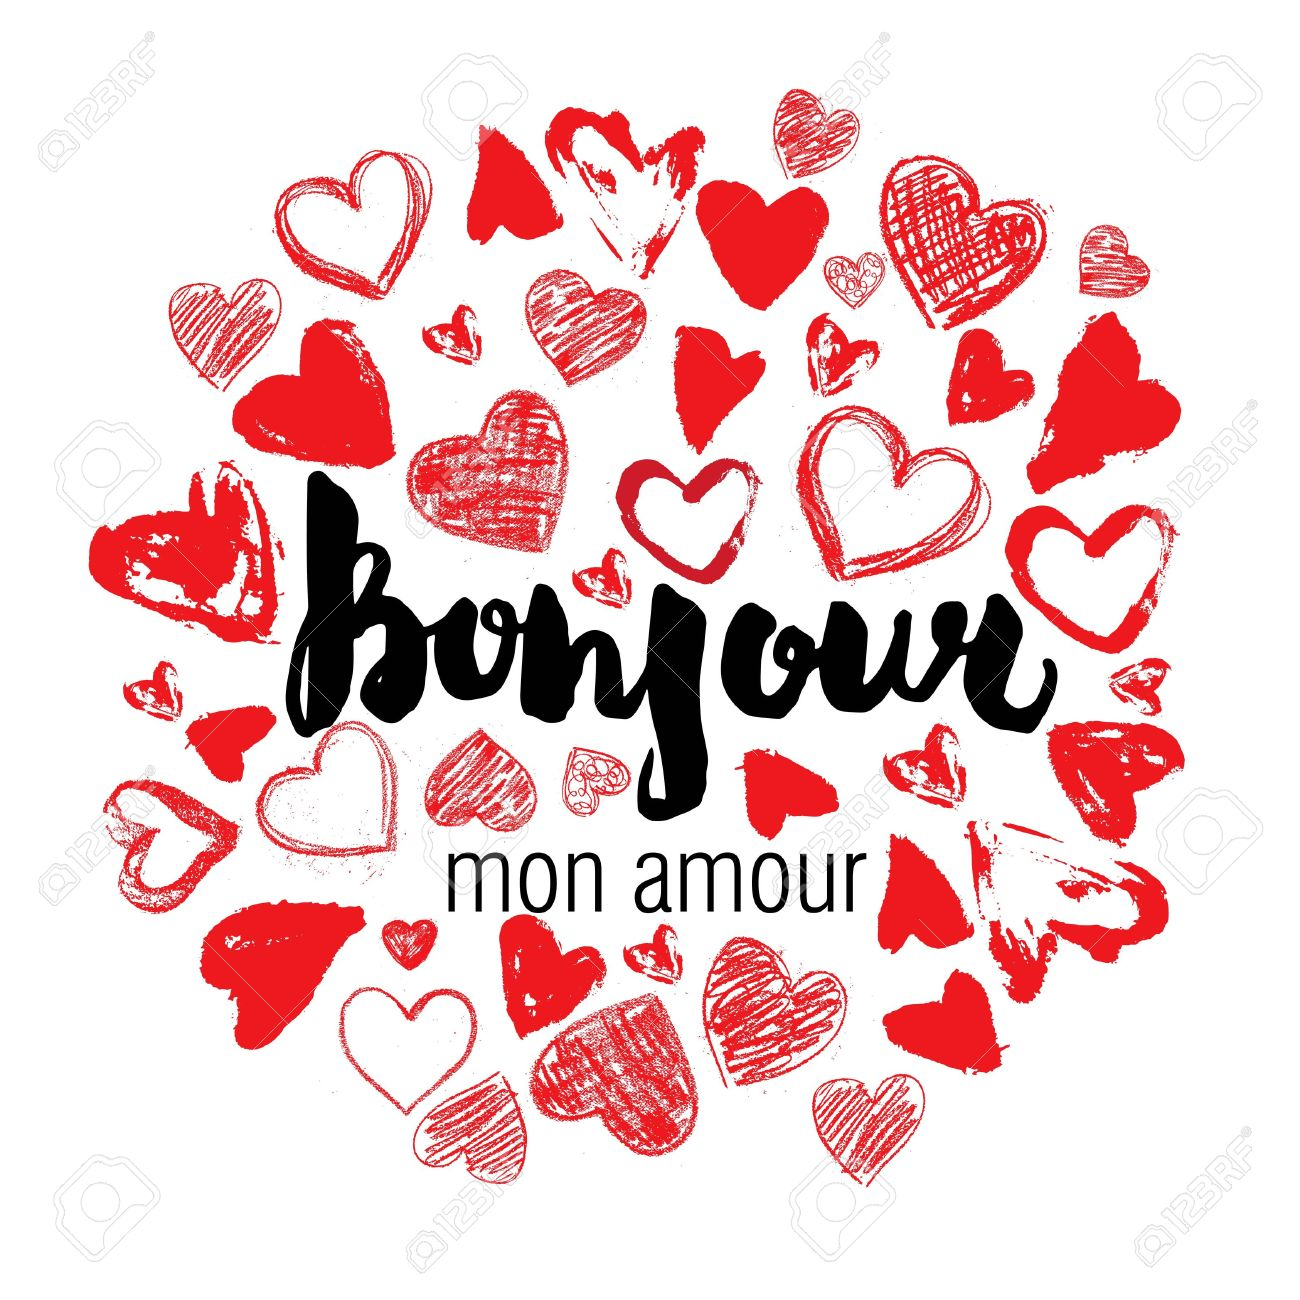 Bonjour Mon Amour Hello My Love French Stylish Hand Drawn